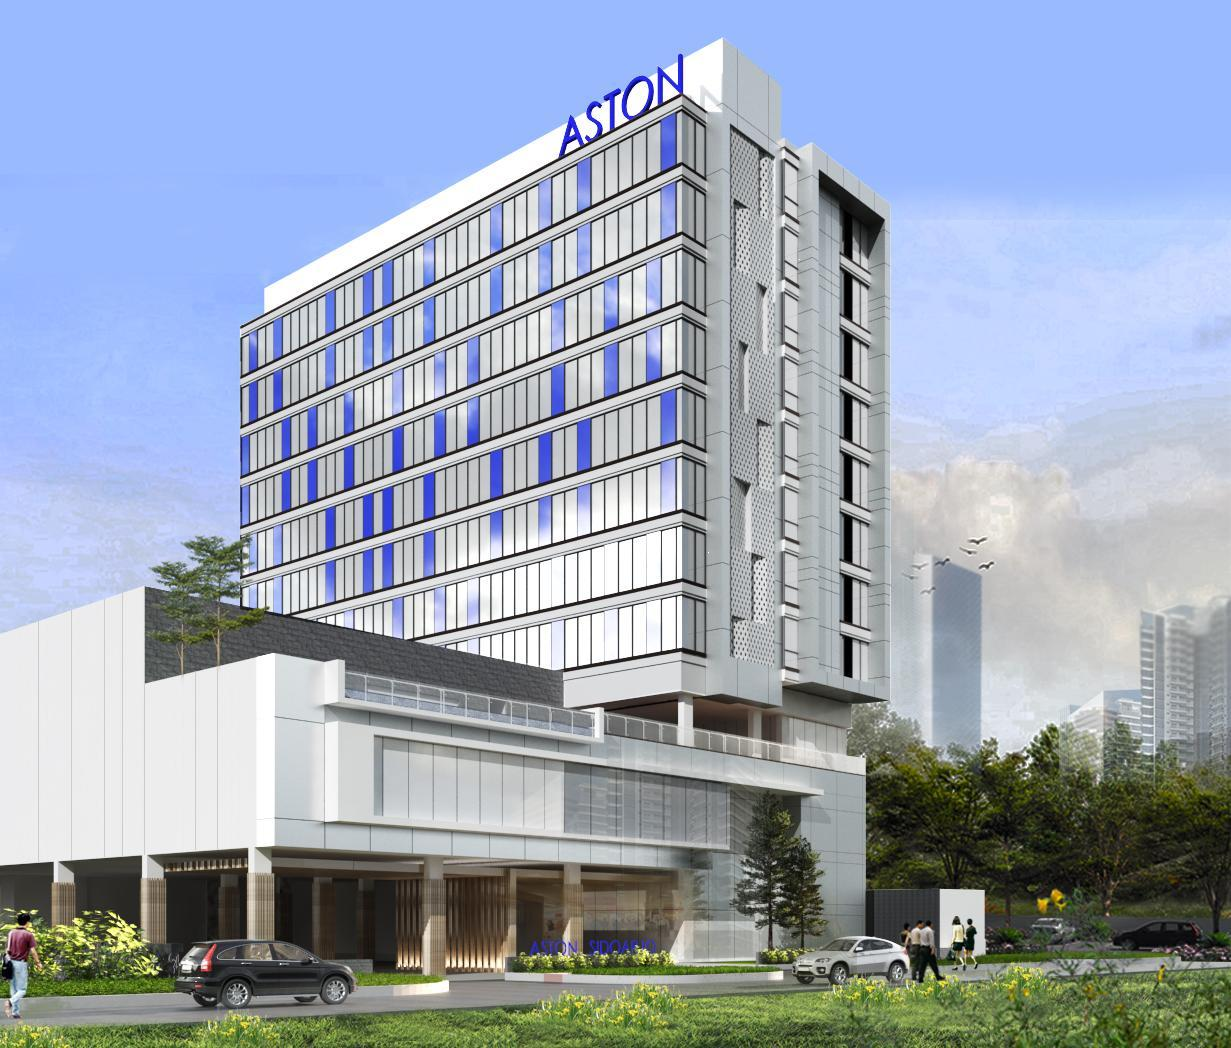 Aston Sidoarjo City Hotel And Conference Center